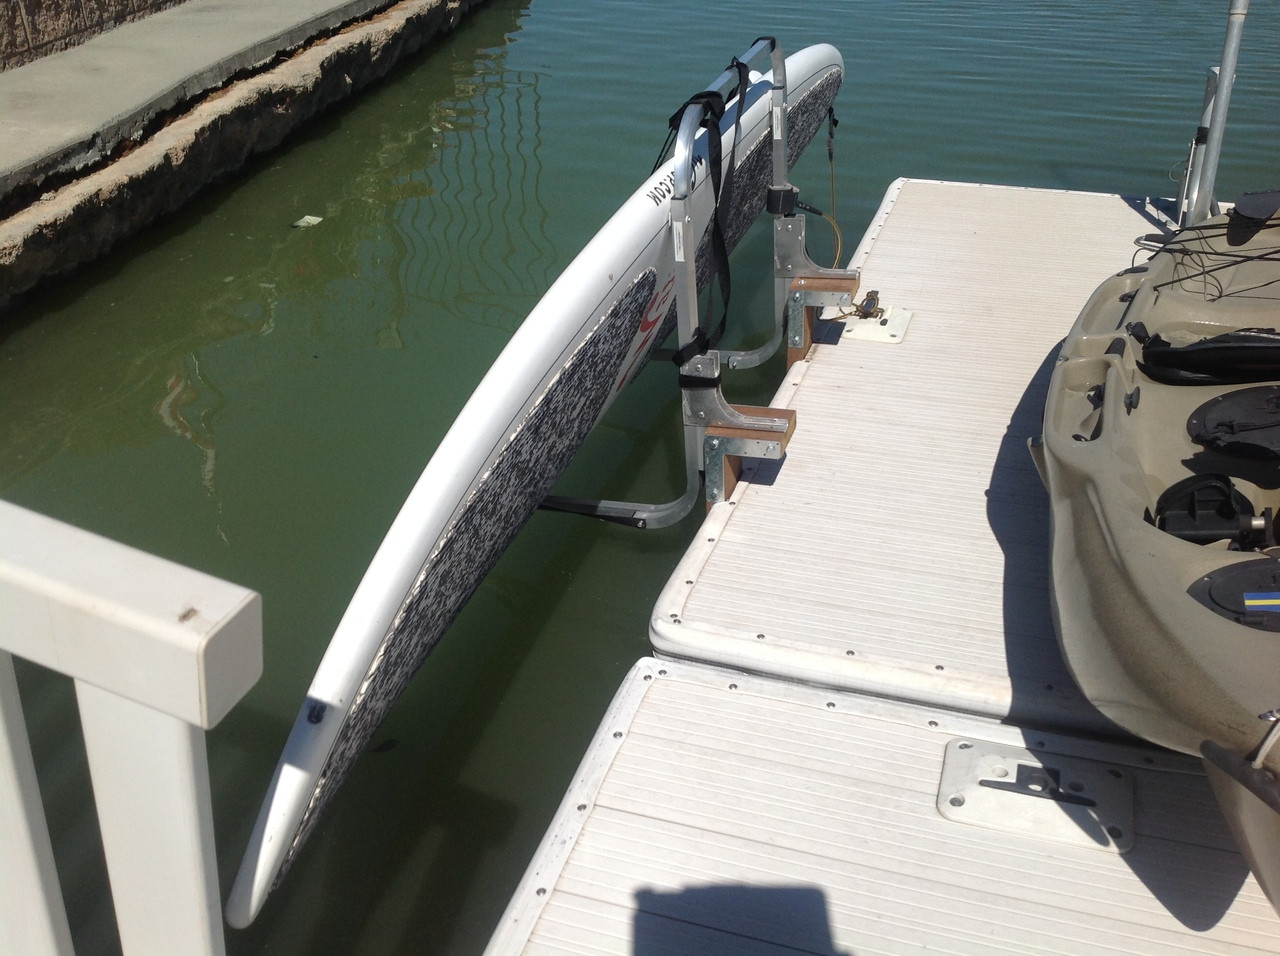 SUP storage for docks and piers